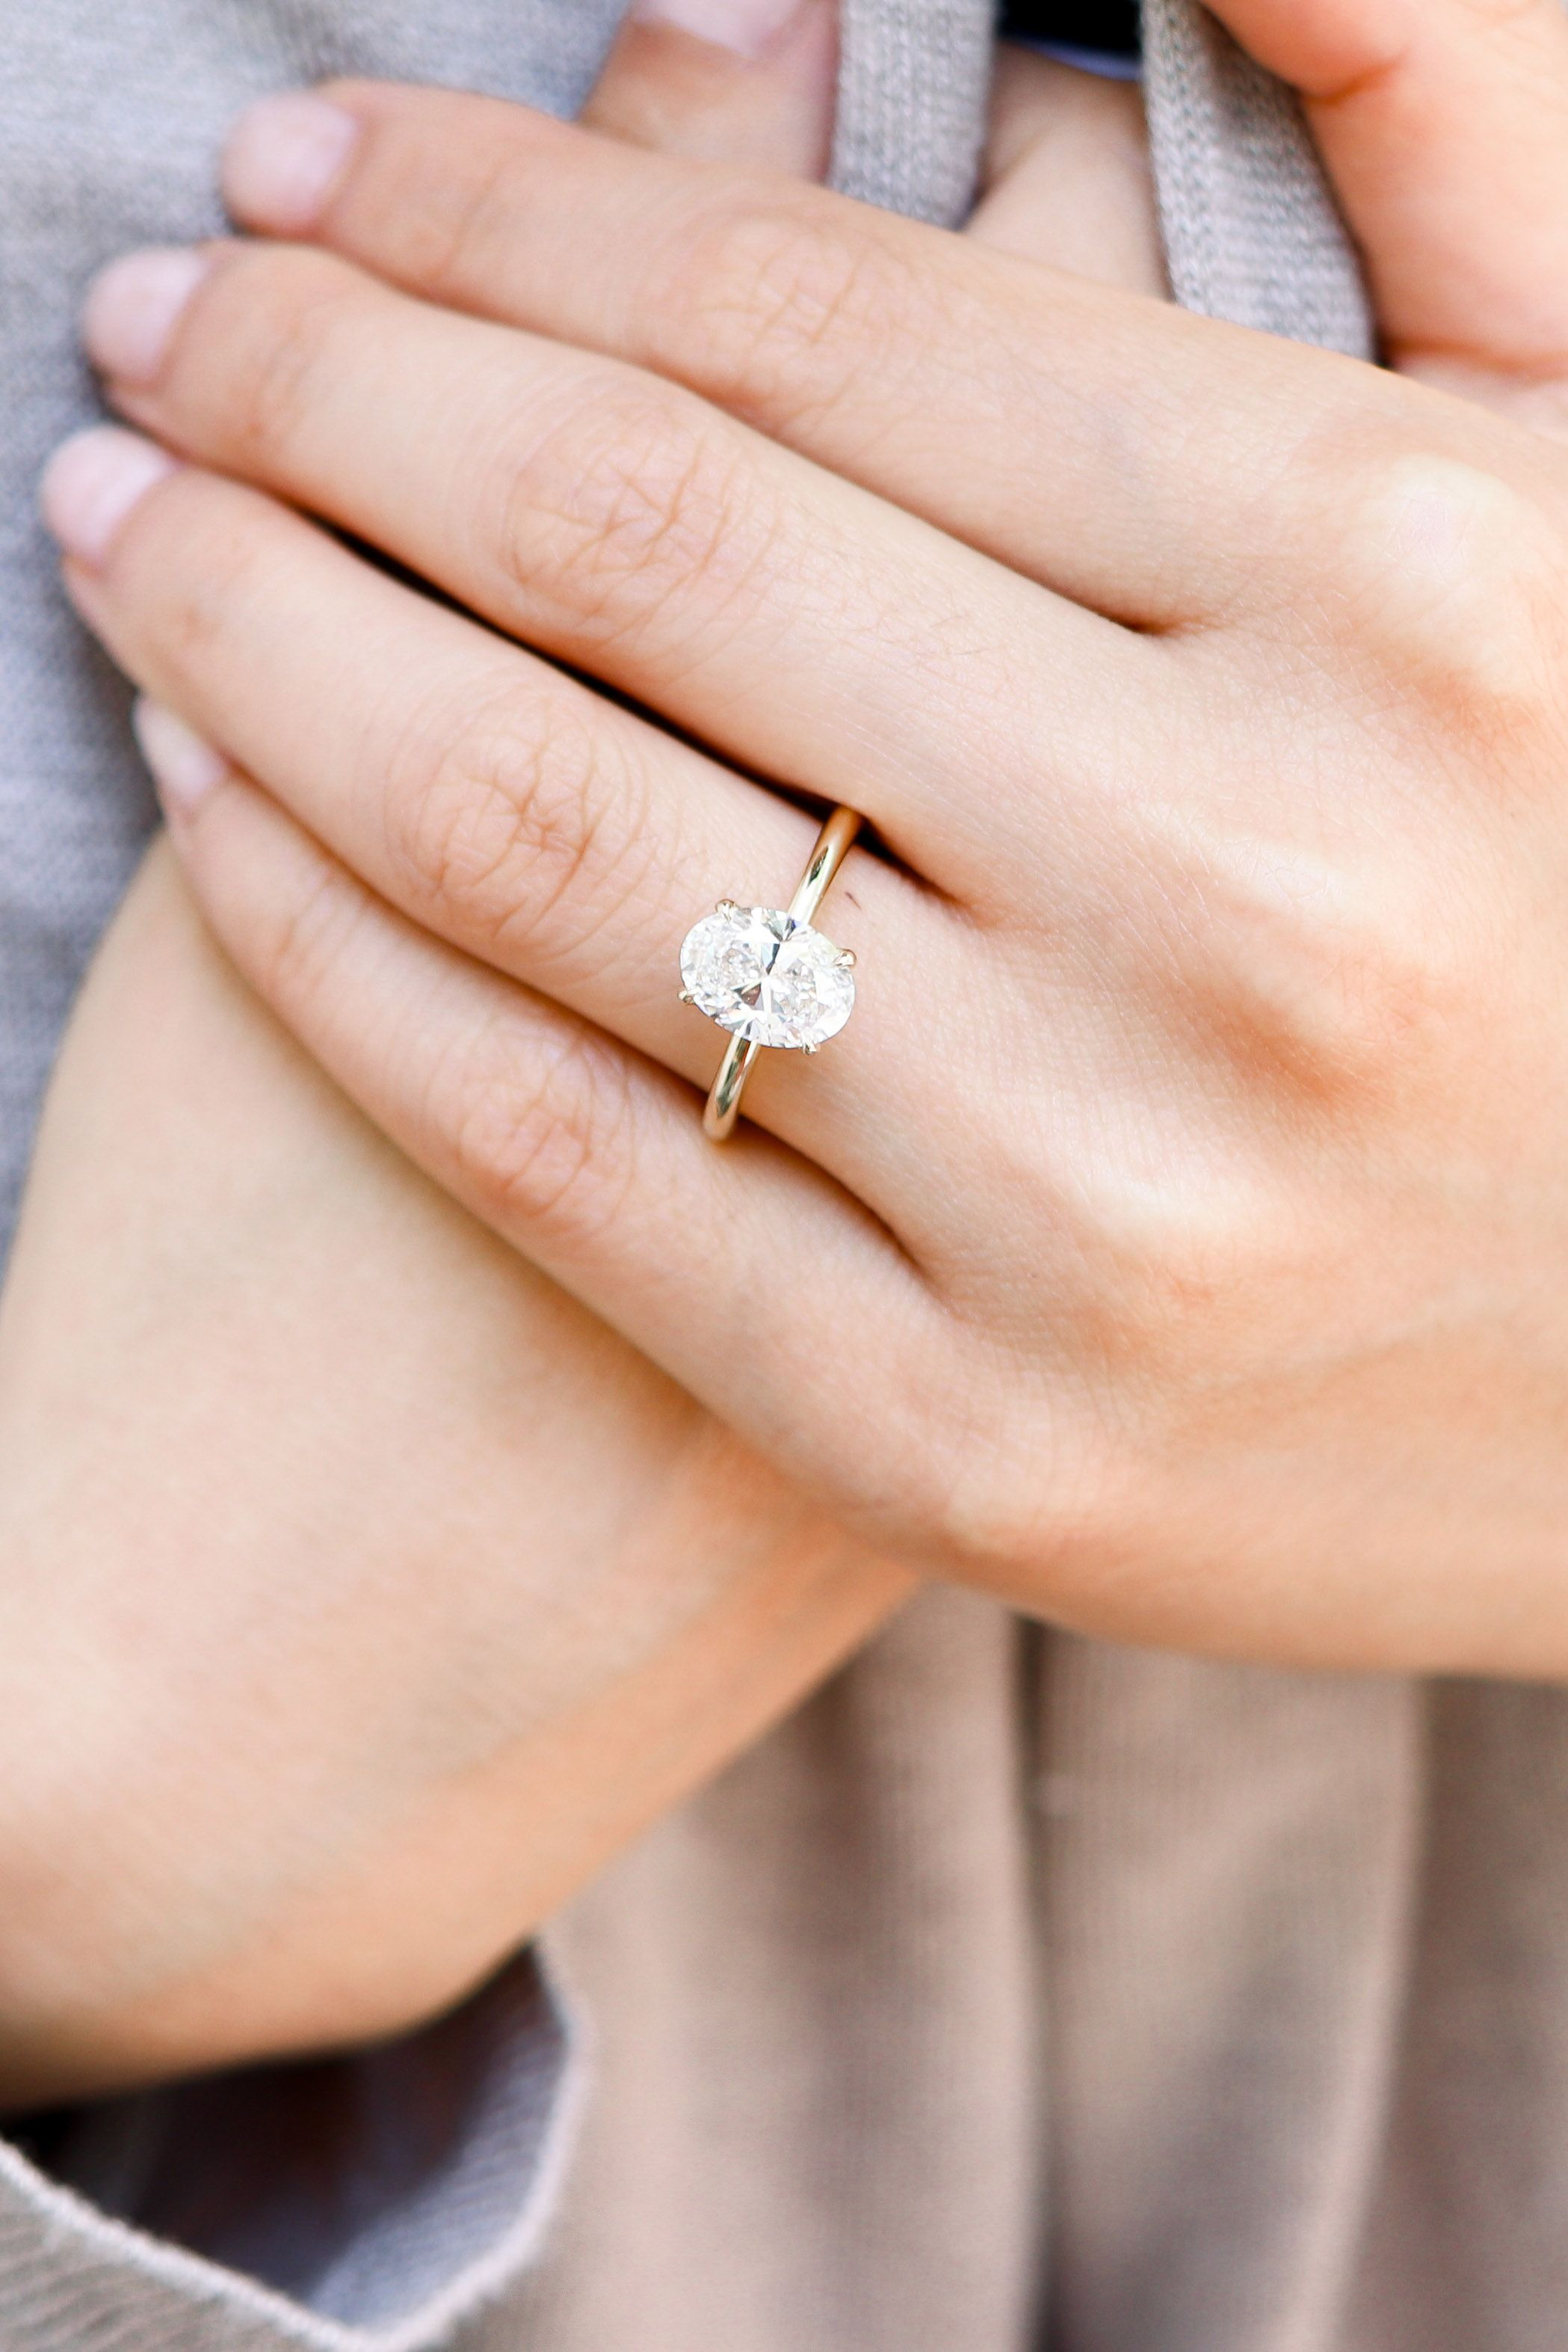 2 0 Carat Oval Solitaire Engagement Ring In 18k Yellow Gold Ada Diam In 2020 Lab Diamond Engagement Ring Oval Solitaire Engagement Ring Lab Grown Diamonds Engagement